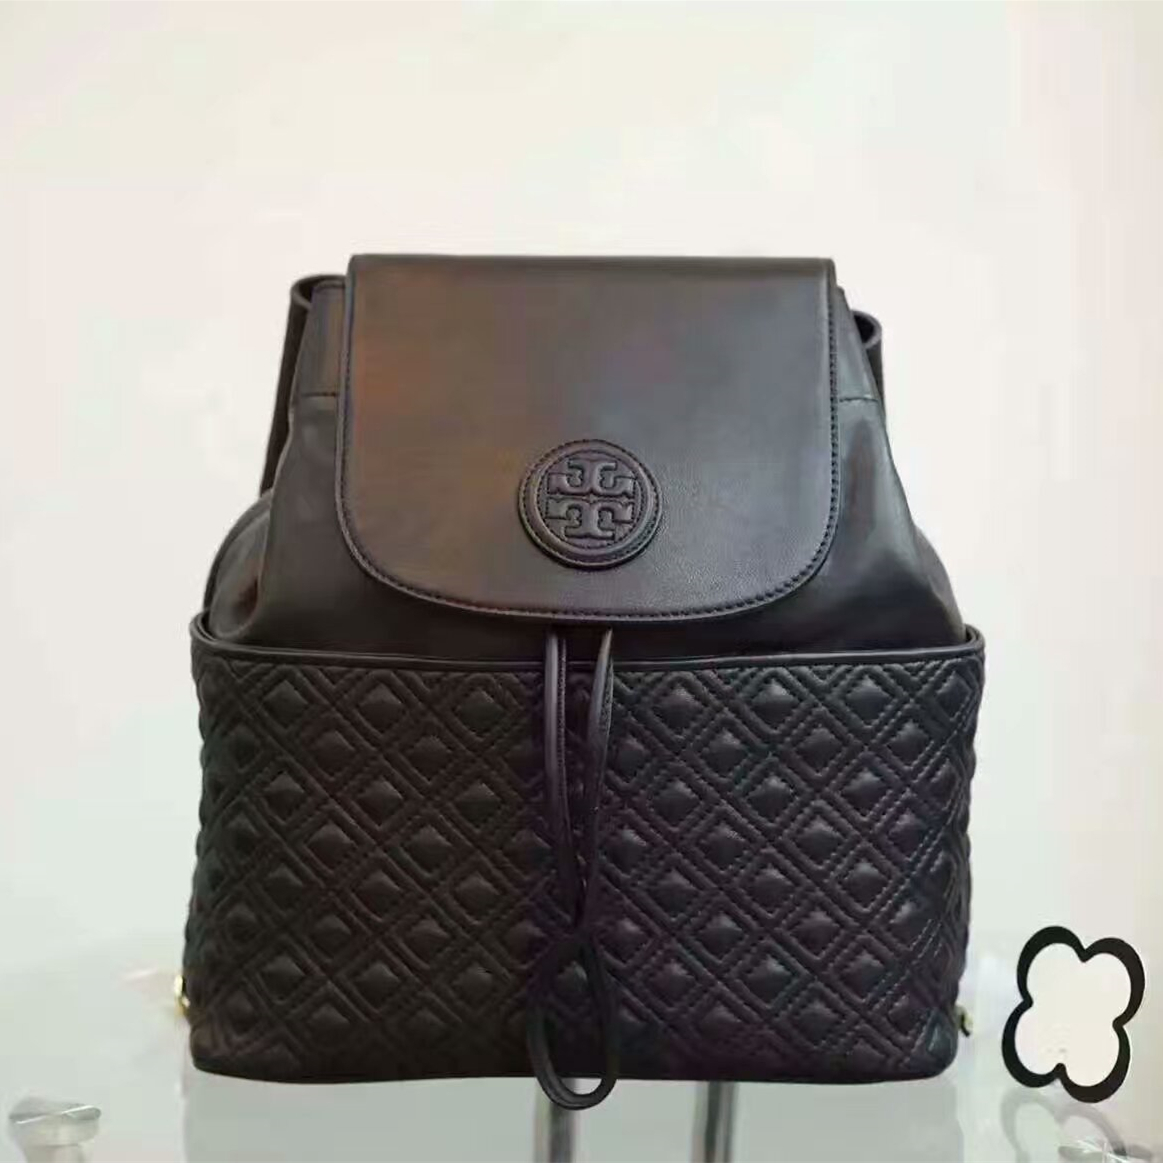 6917c67e2554 Mmexport1482764727026. Mmexport1482764727026. Tory Burch Marion Quilted  Backpack. Tory Burch Marion Quilted Backpack